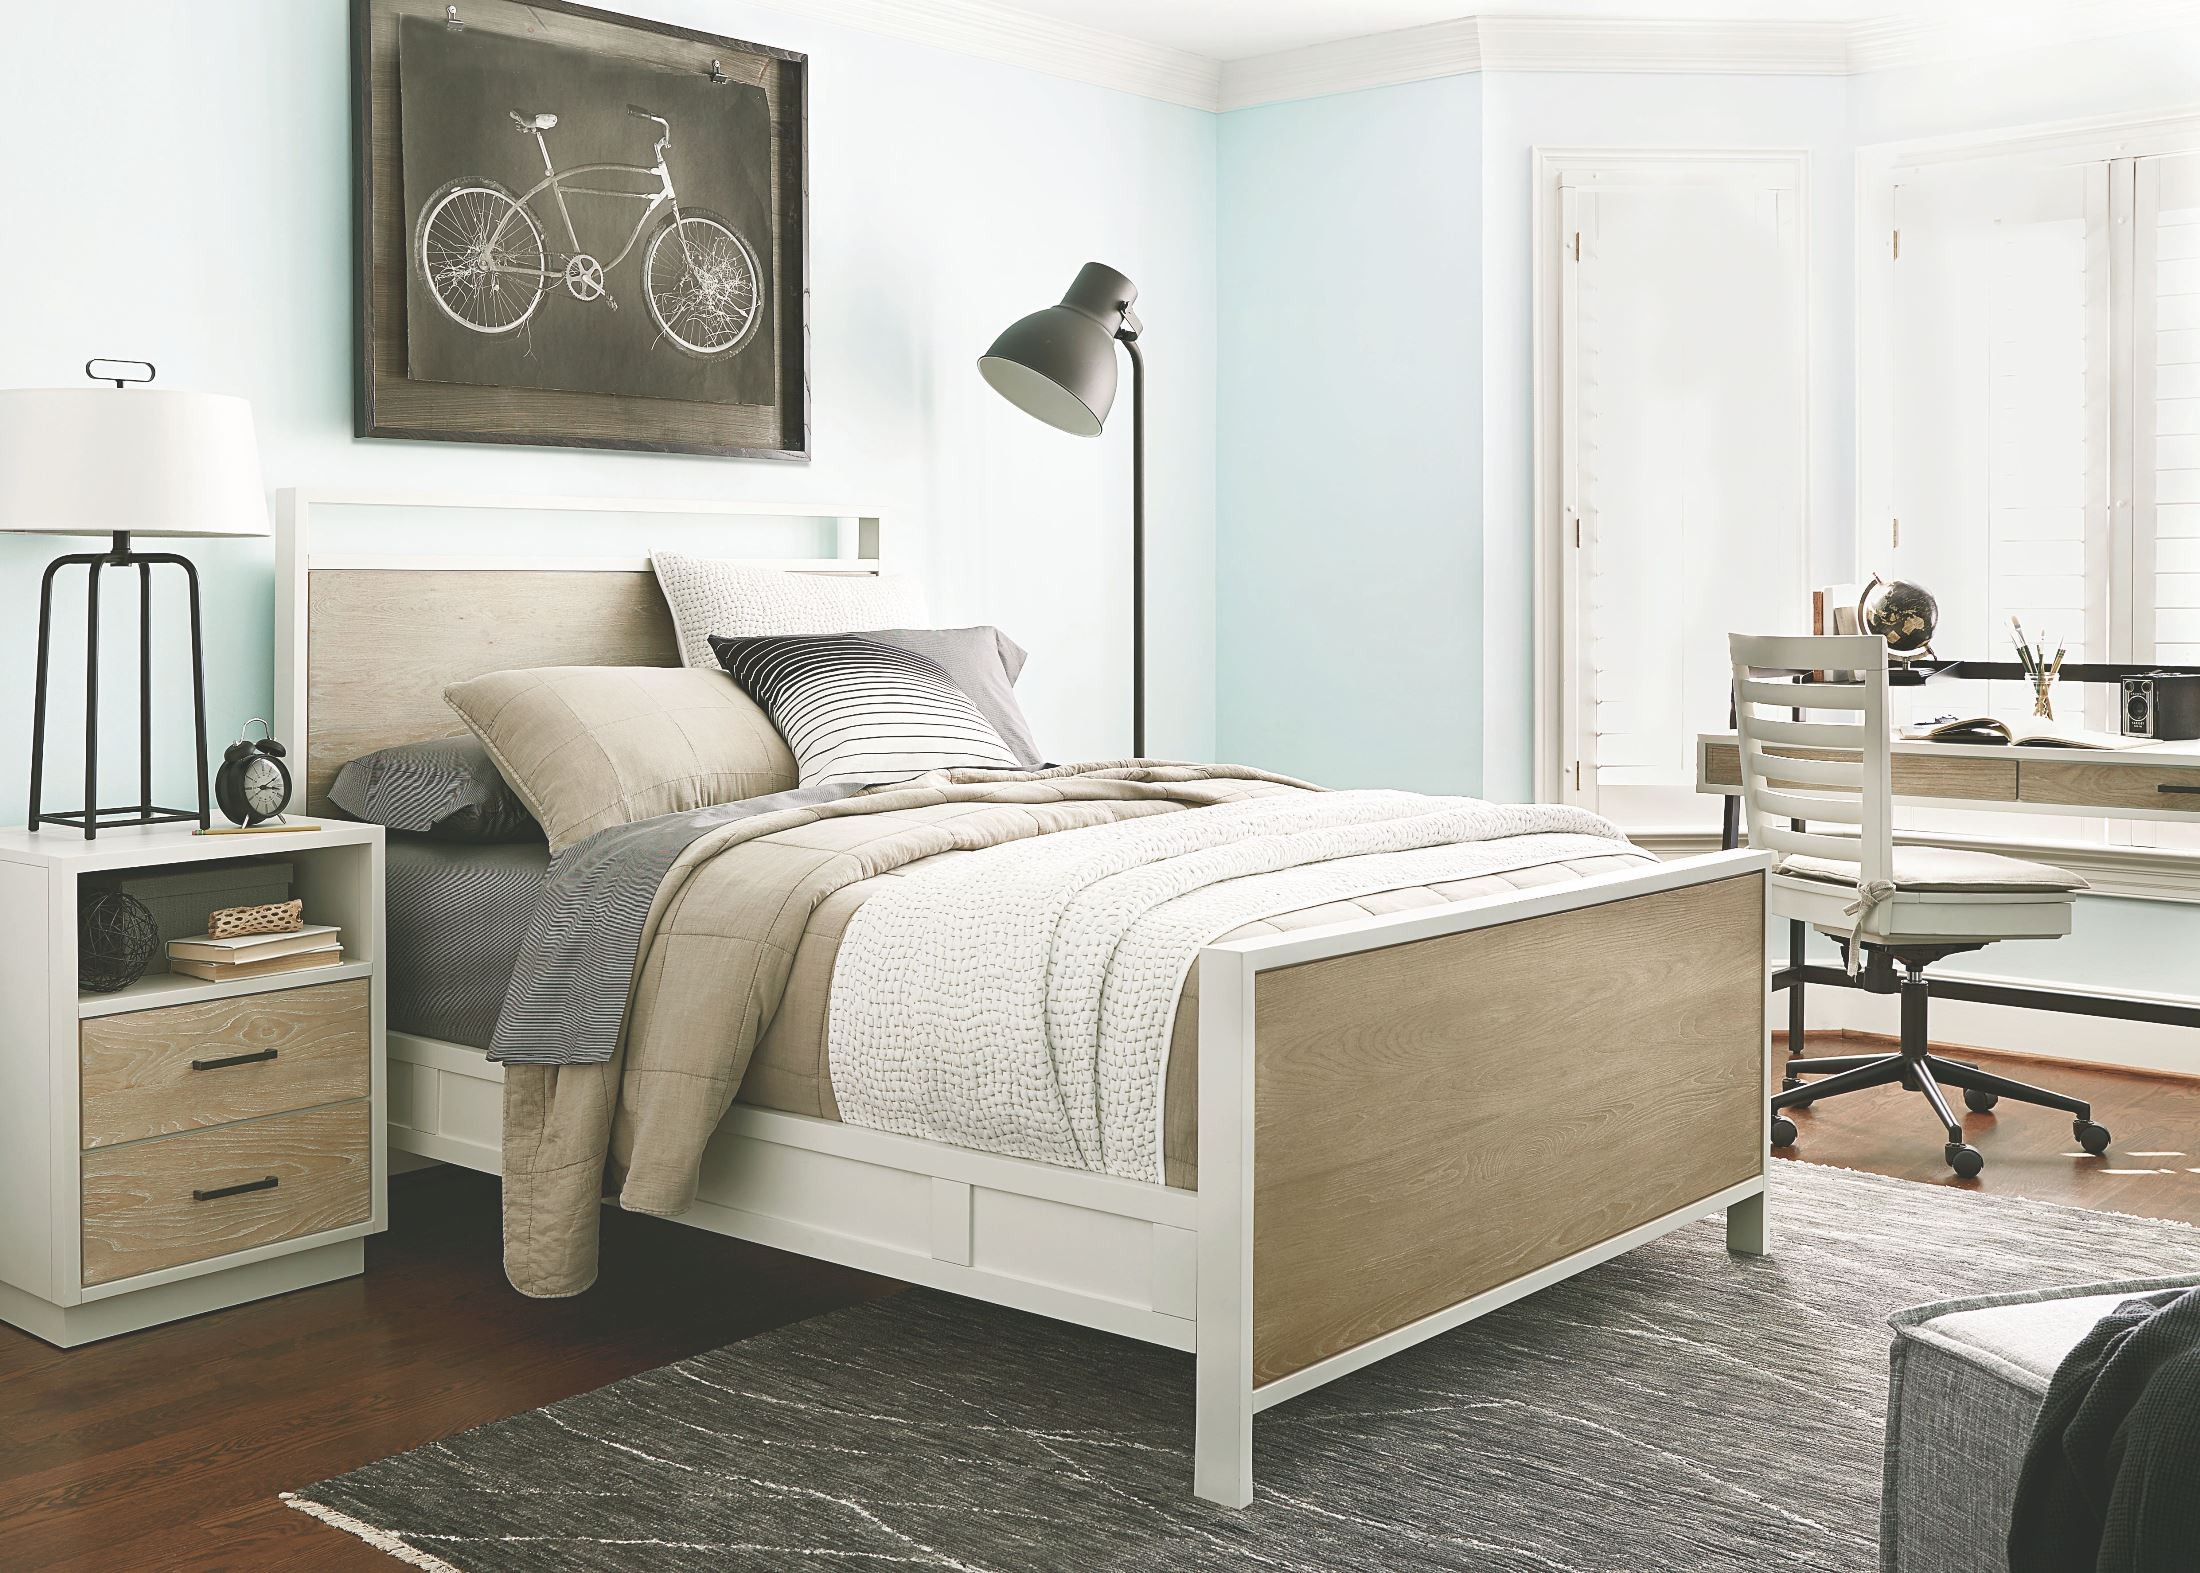 Myroom parchment and gray youth panel bedroom set from